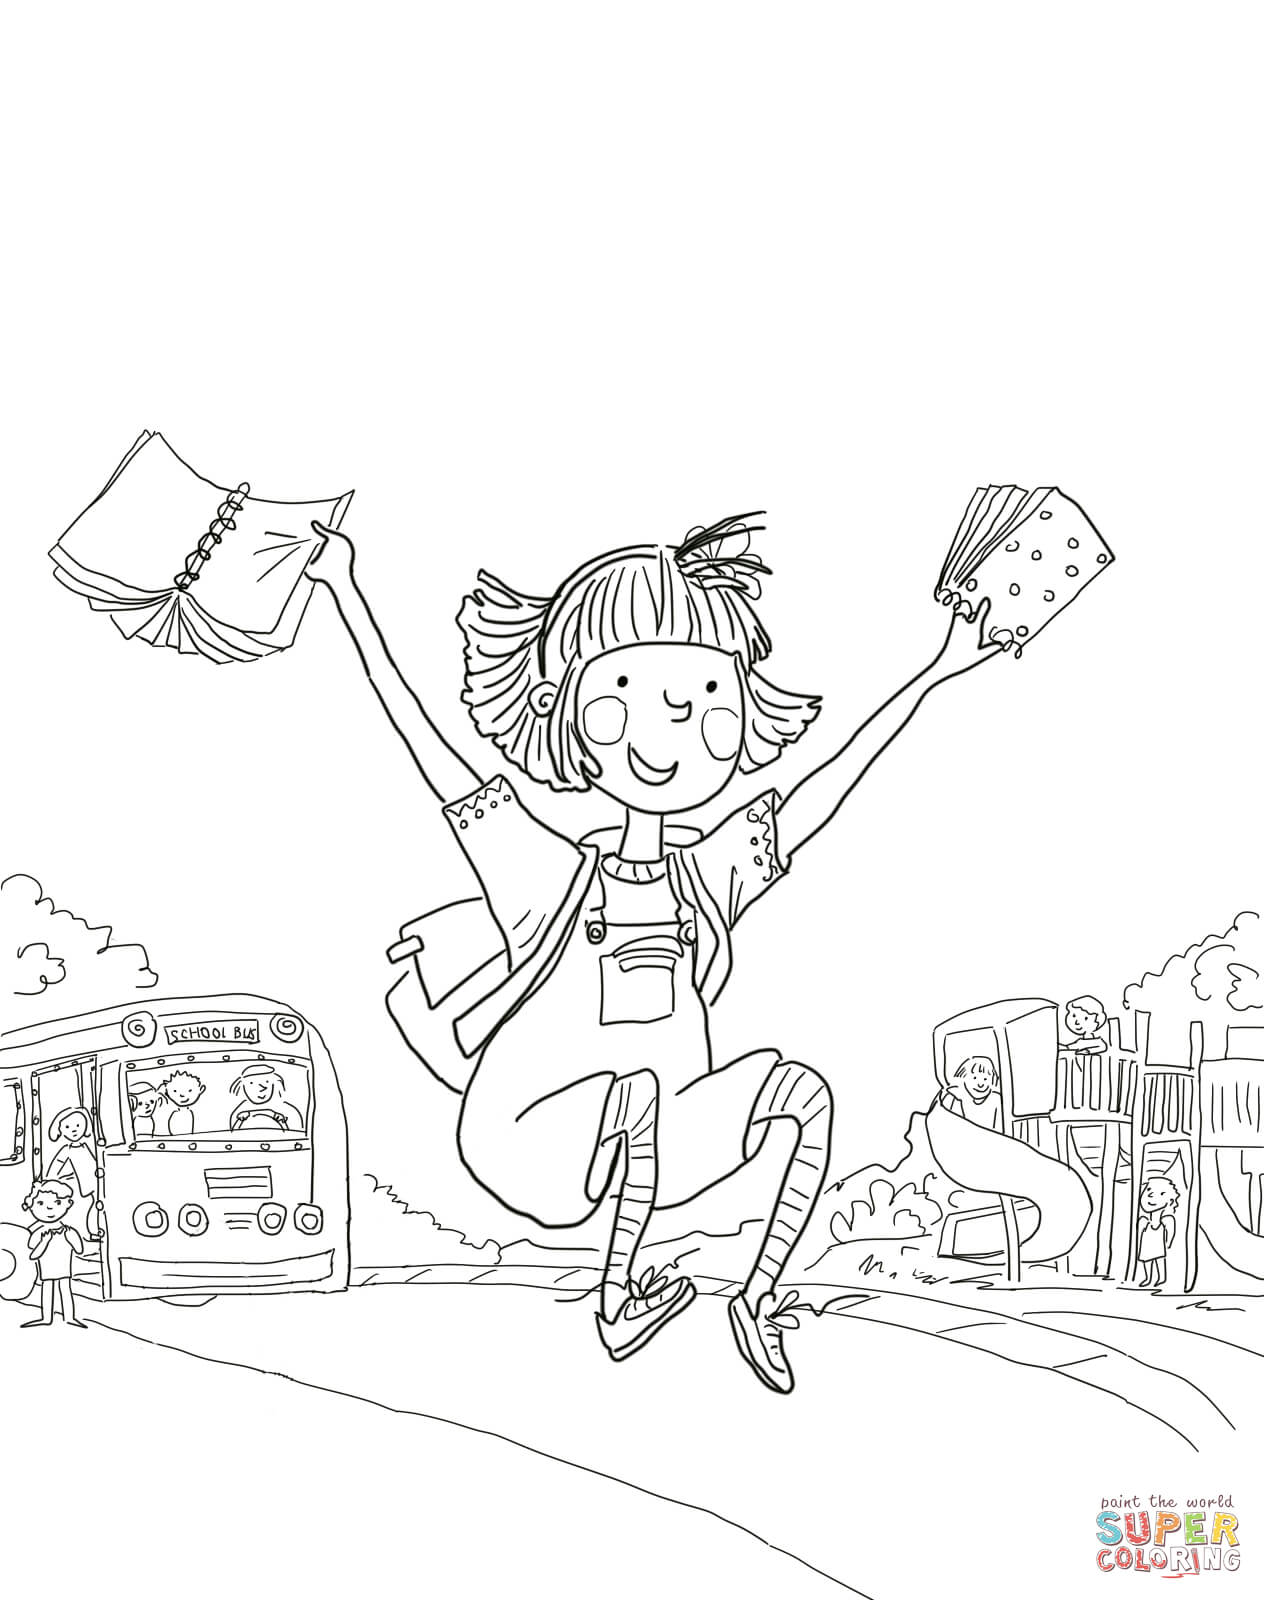 Get free high quality hd wallpapers amelia bedelia coloring pages